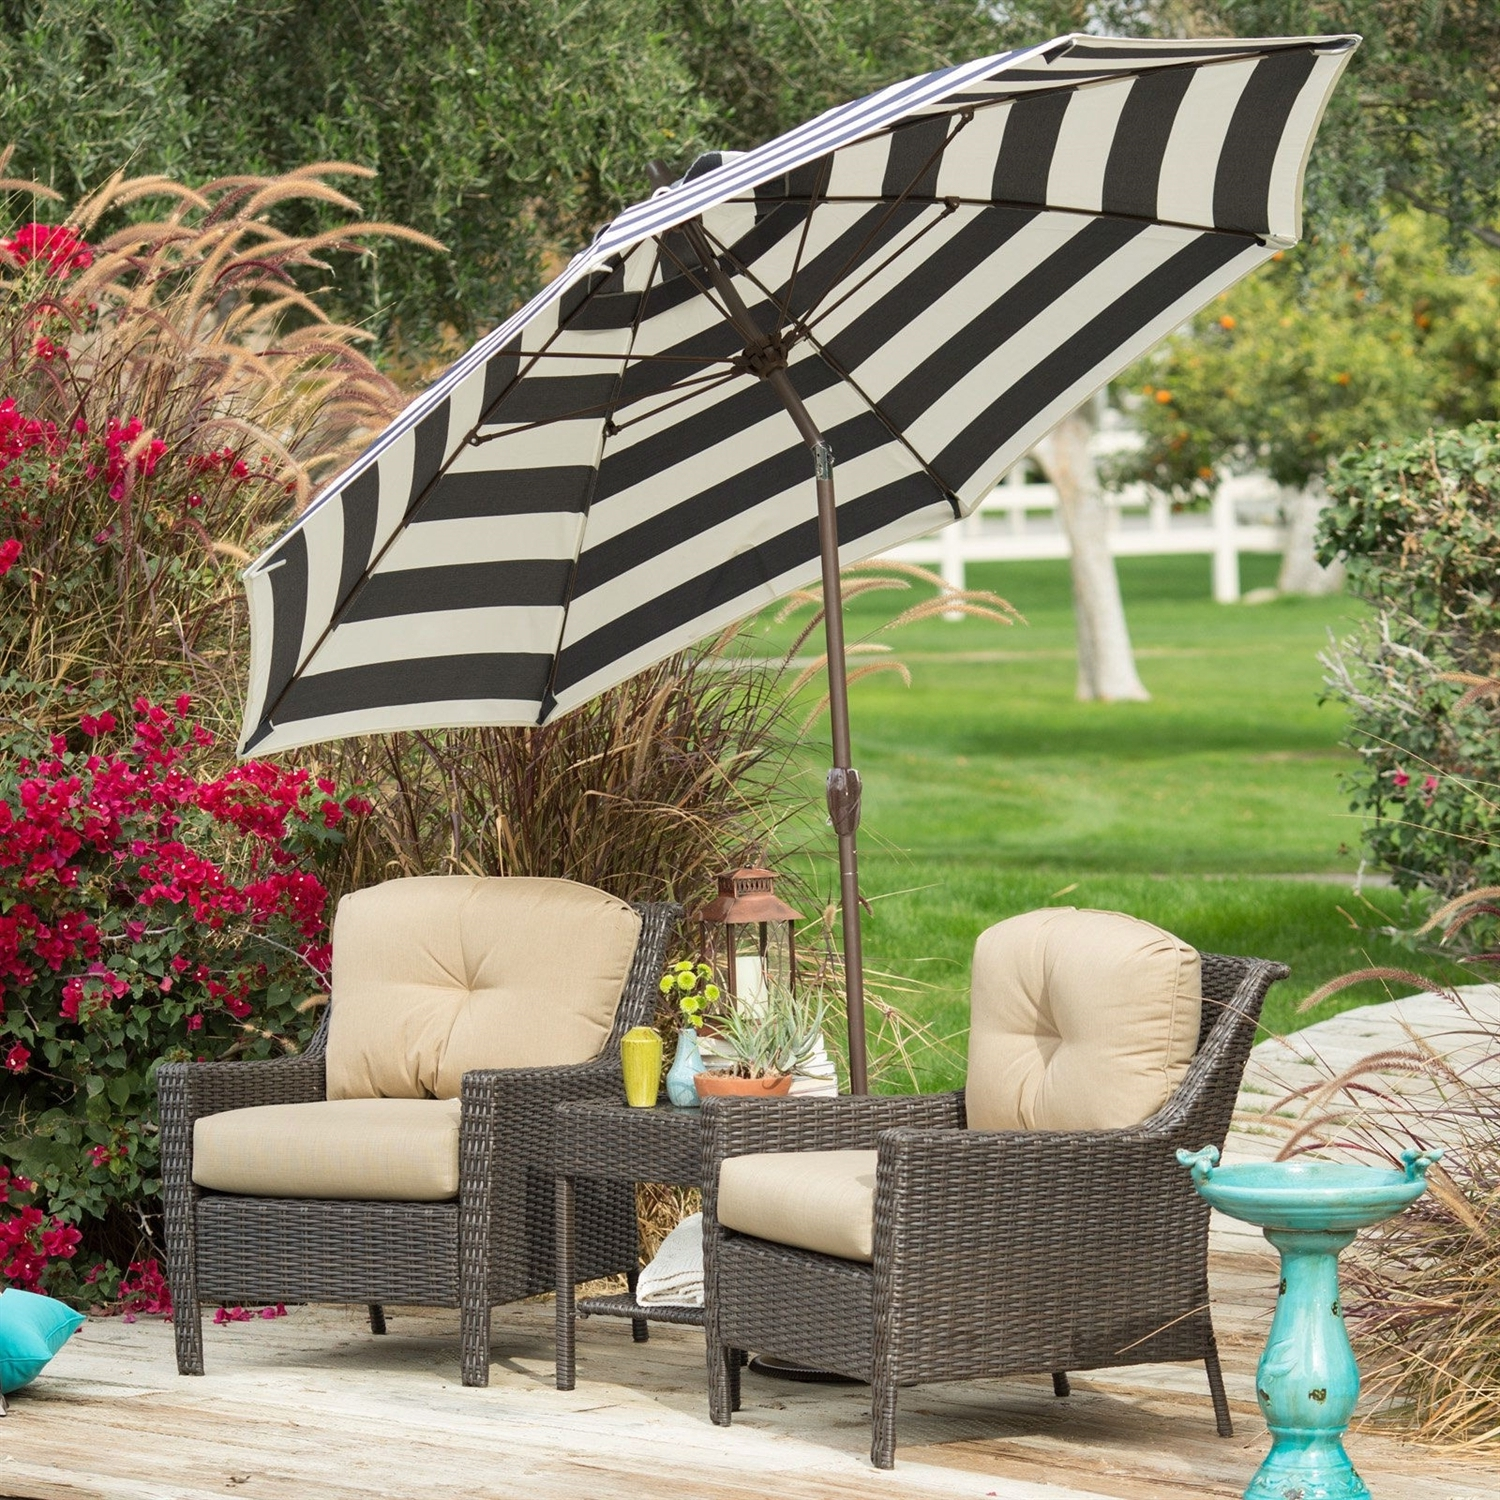 Current Stylish 9 Ft Market Patio Umbrella With Crank And Tilt In Dark Navy With White Patio Umbrellas (View 12 of 20)